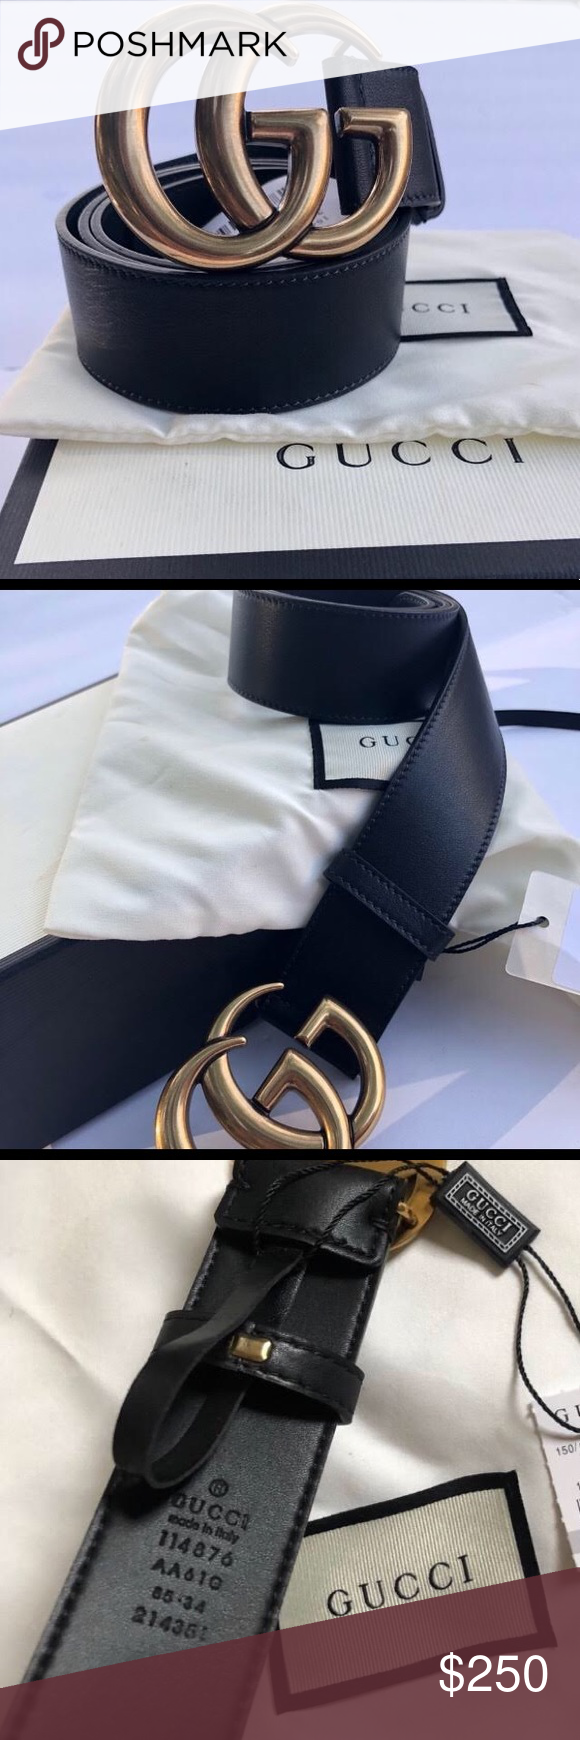 072460c0a1a NEW Gucci Double GG Gold Buckle Belt w  BOX   Acc Brand new Firm price no  offers Gucci Accessories Belts